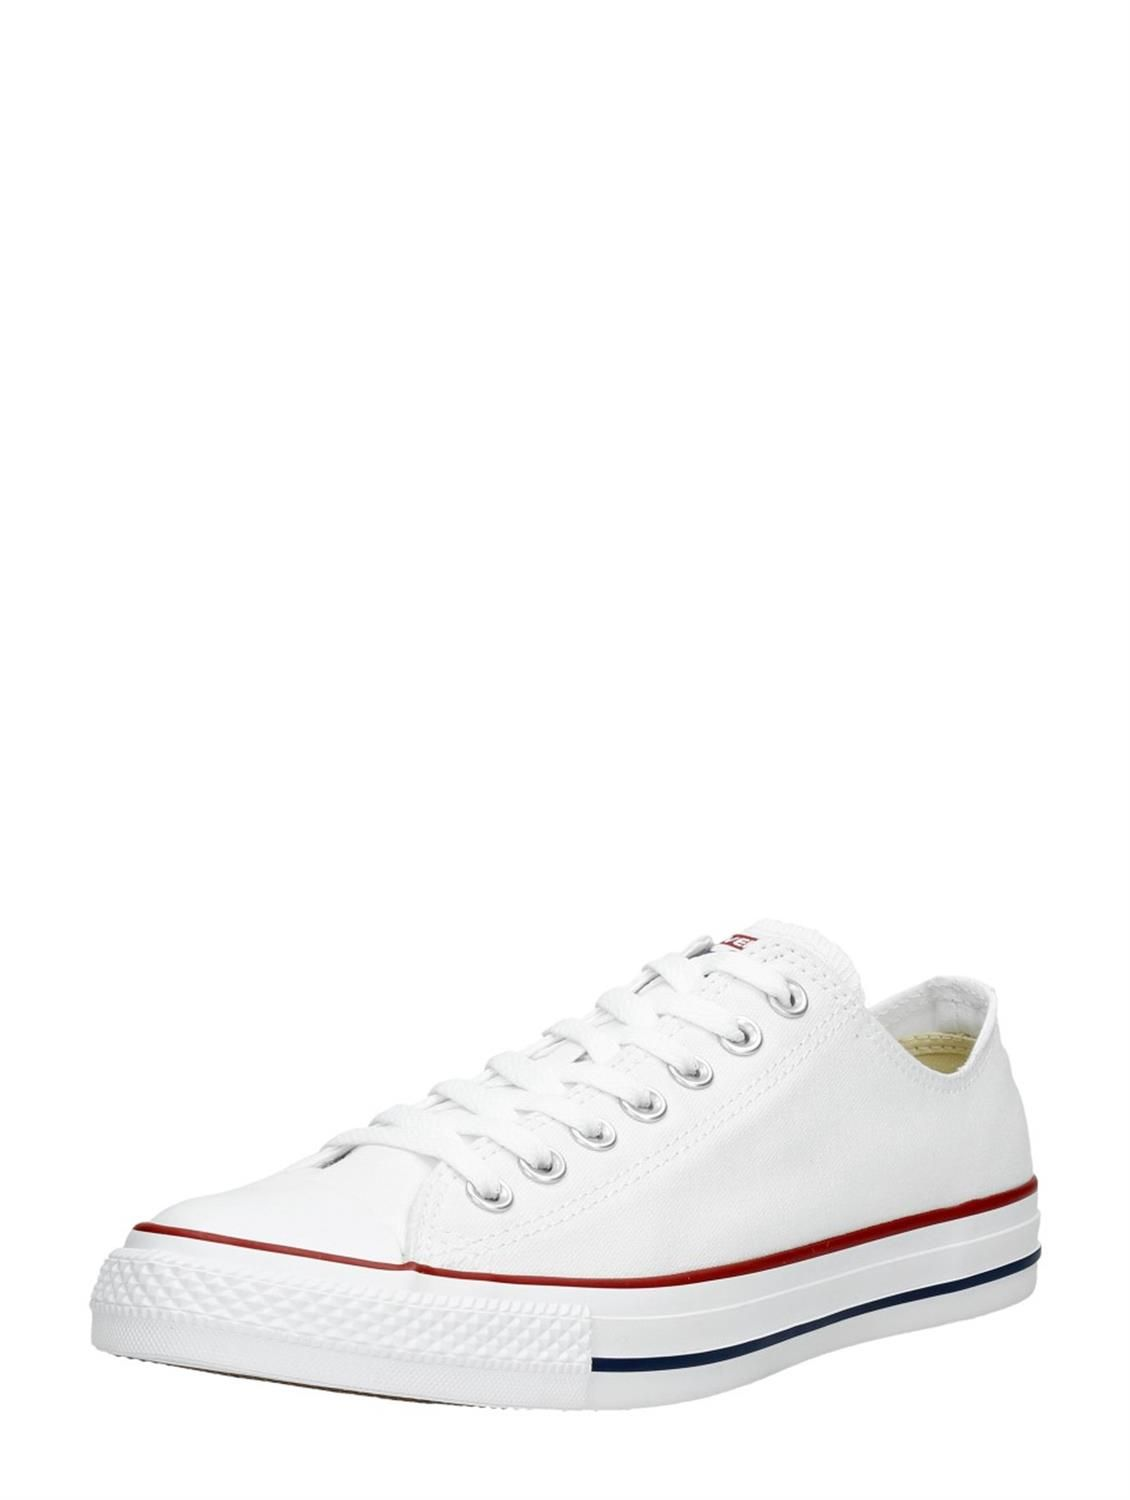 Chuck Taylor All Star Core wit | Chuck taylors, Converse ...